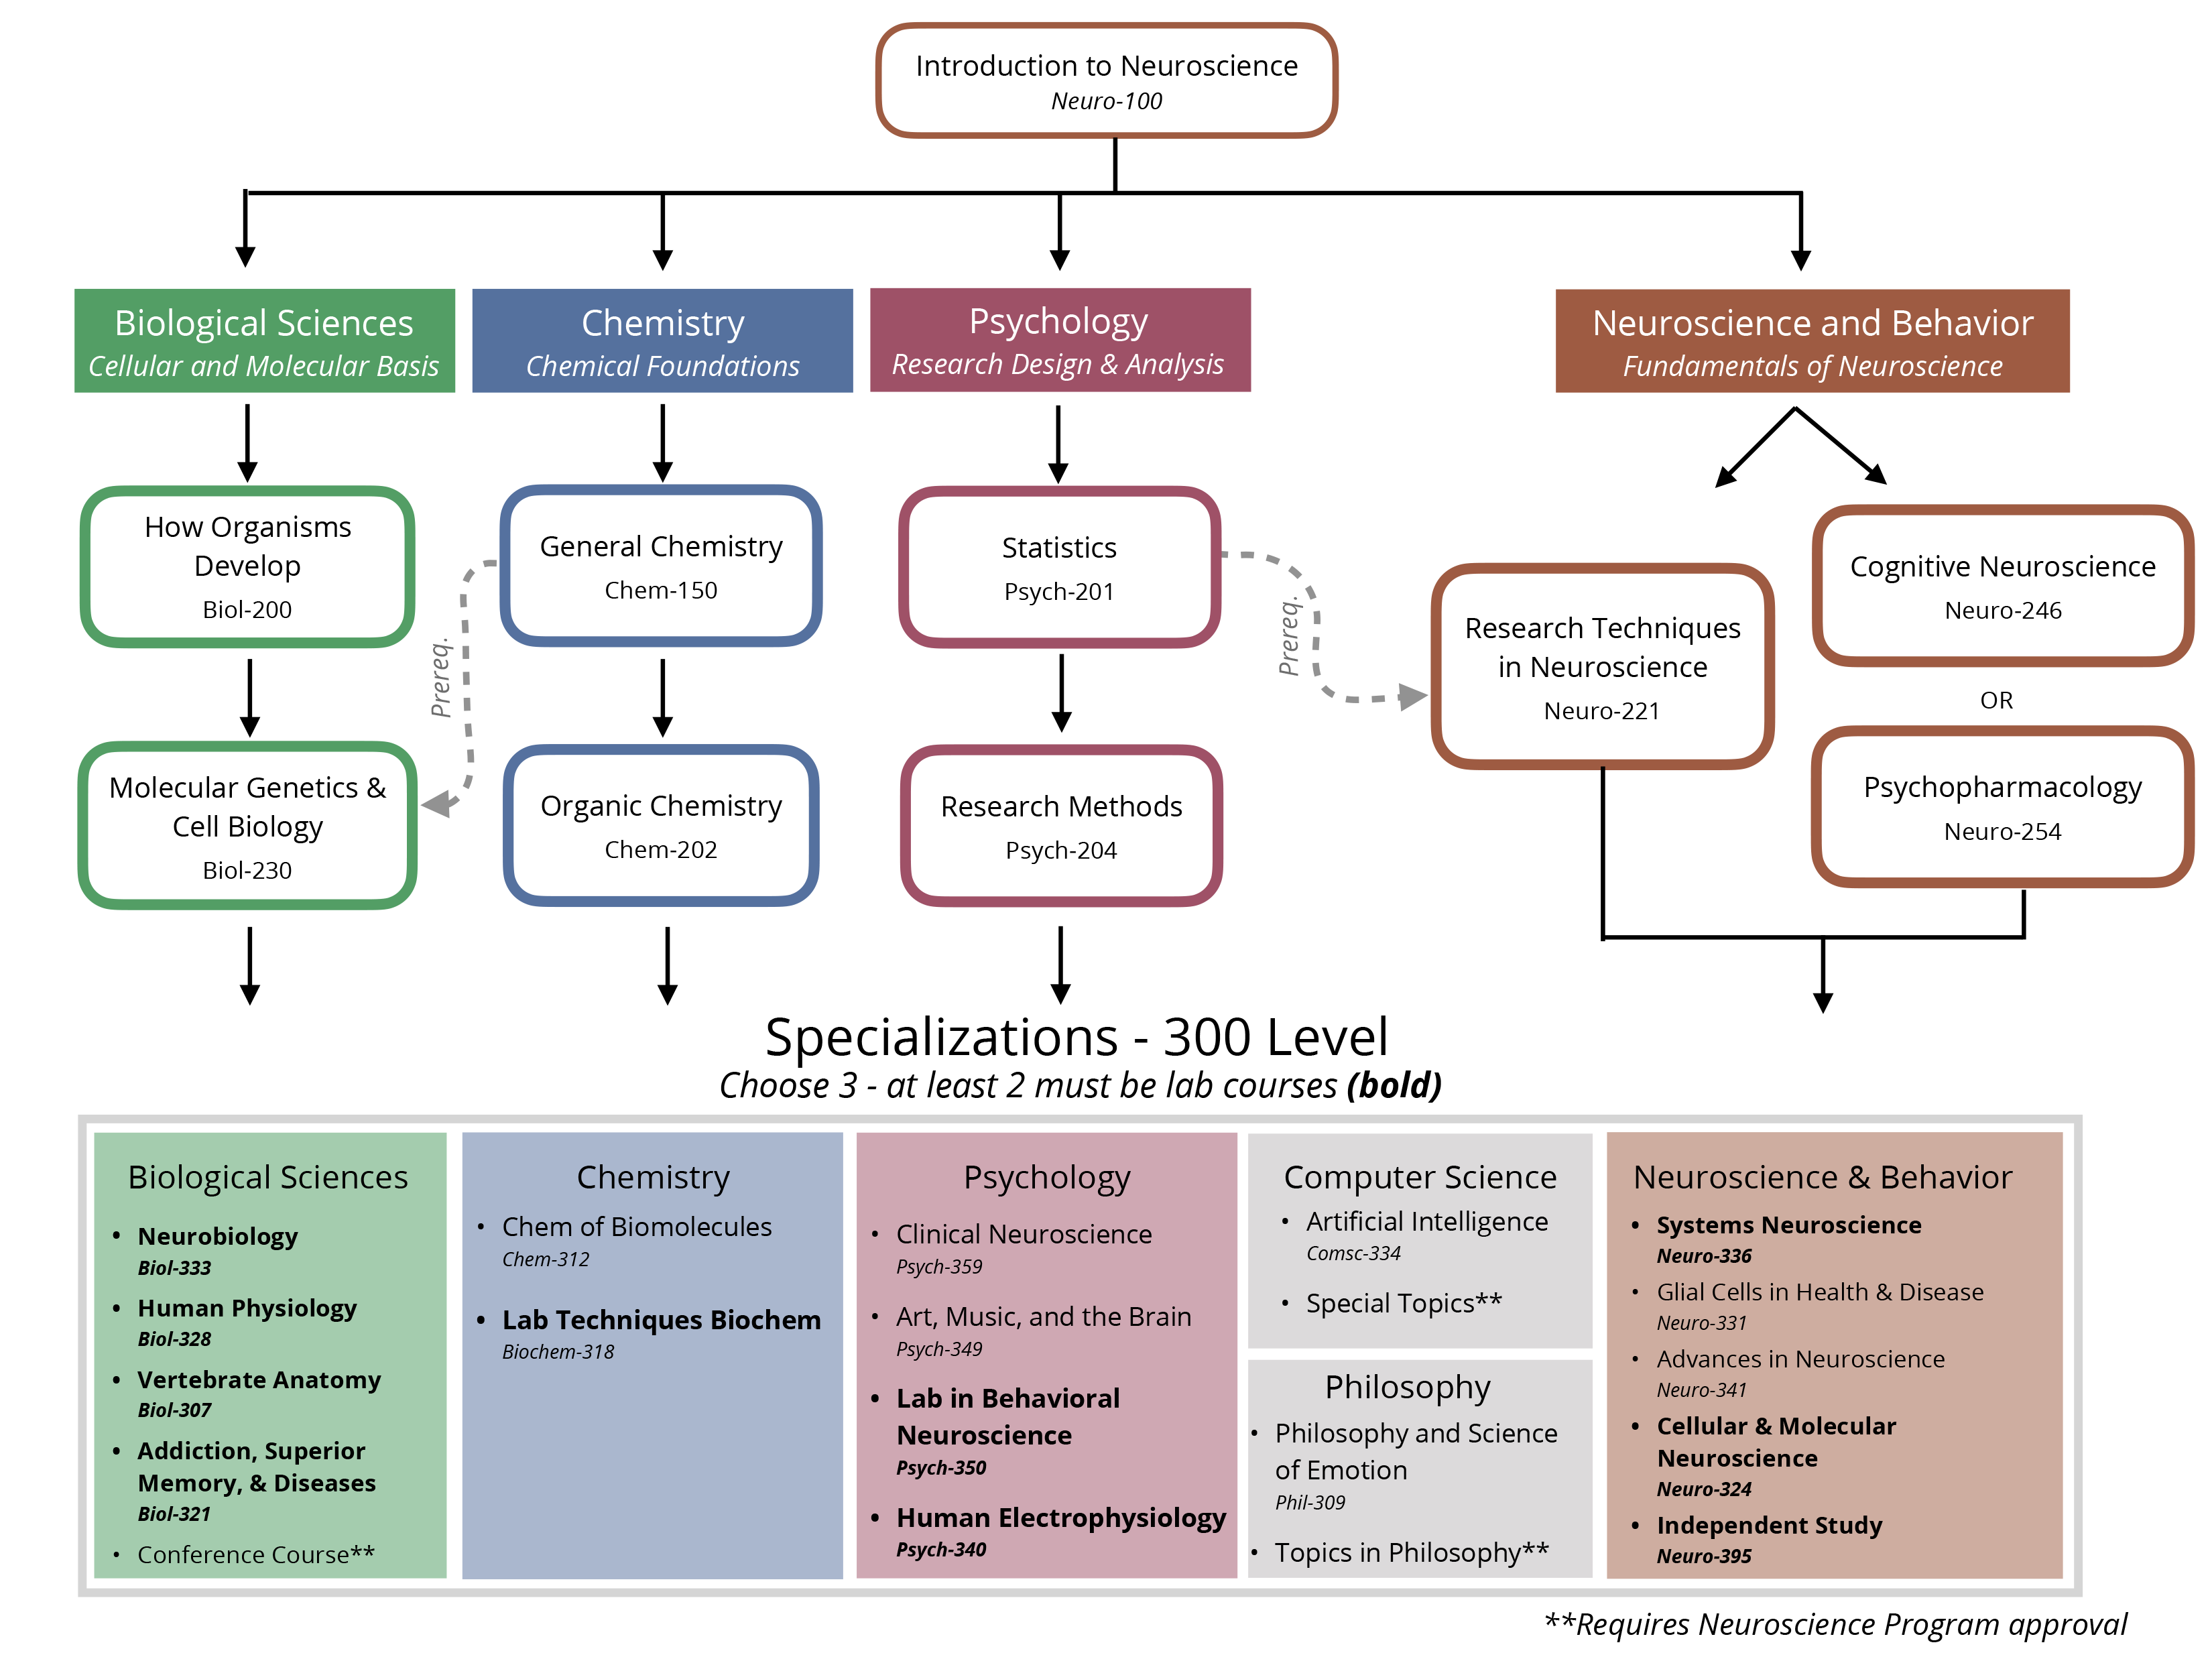 Neuroscience Flow Chart for Biological Sciences, Chemistry, Psychology, and Neuroscience and Behavior